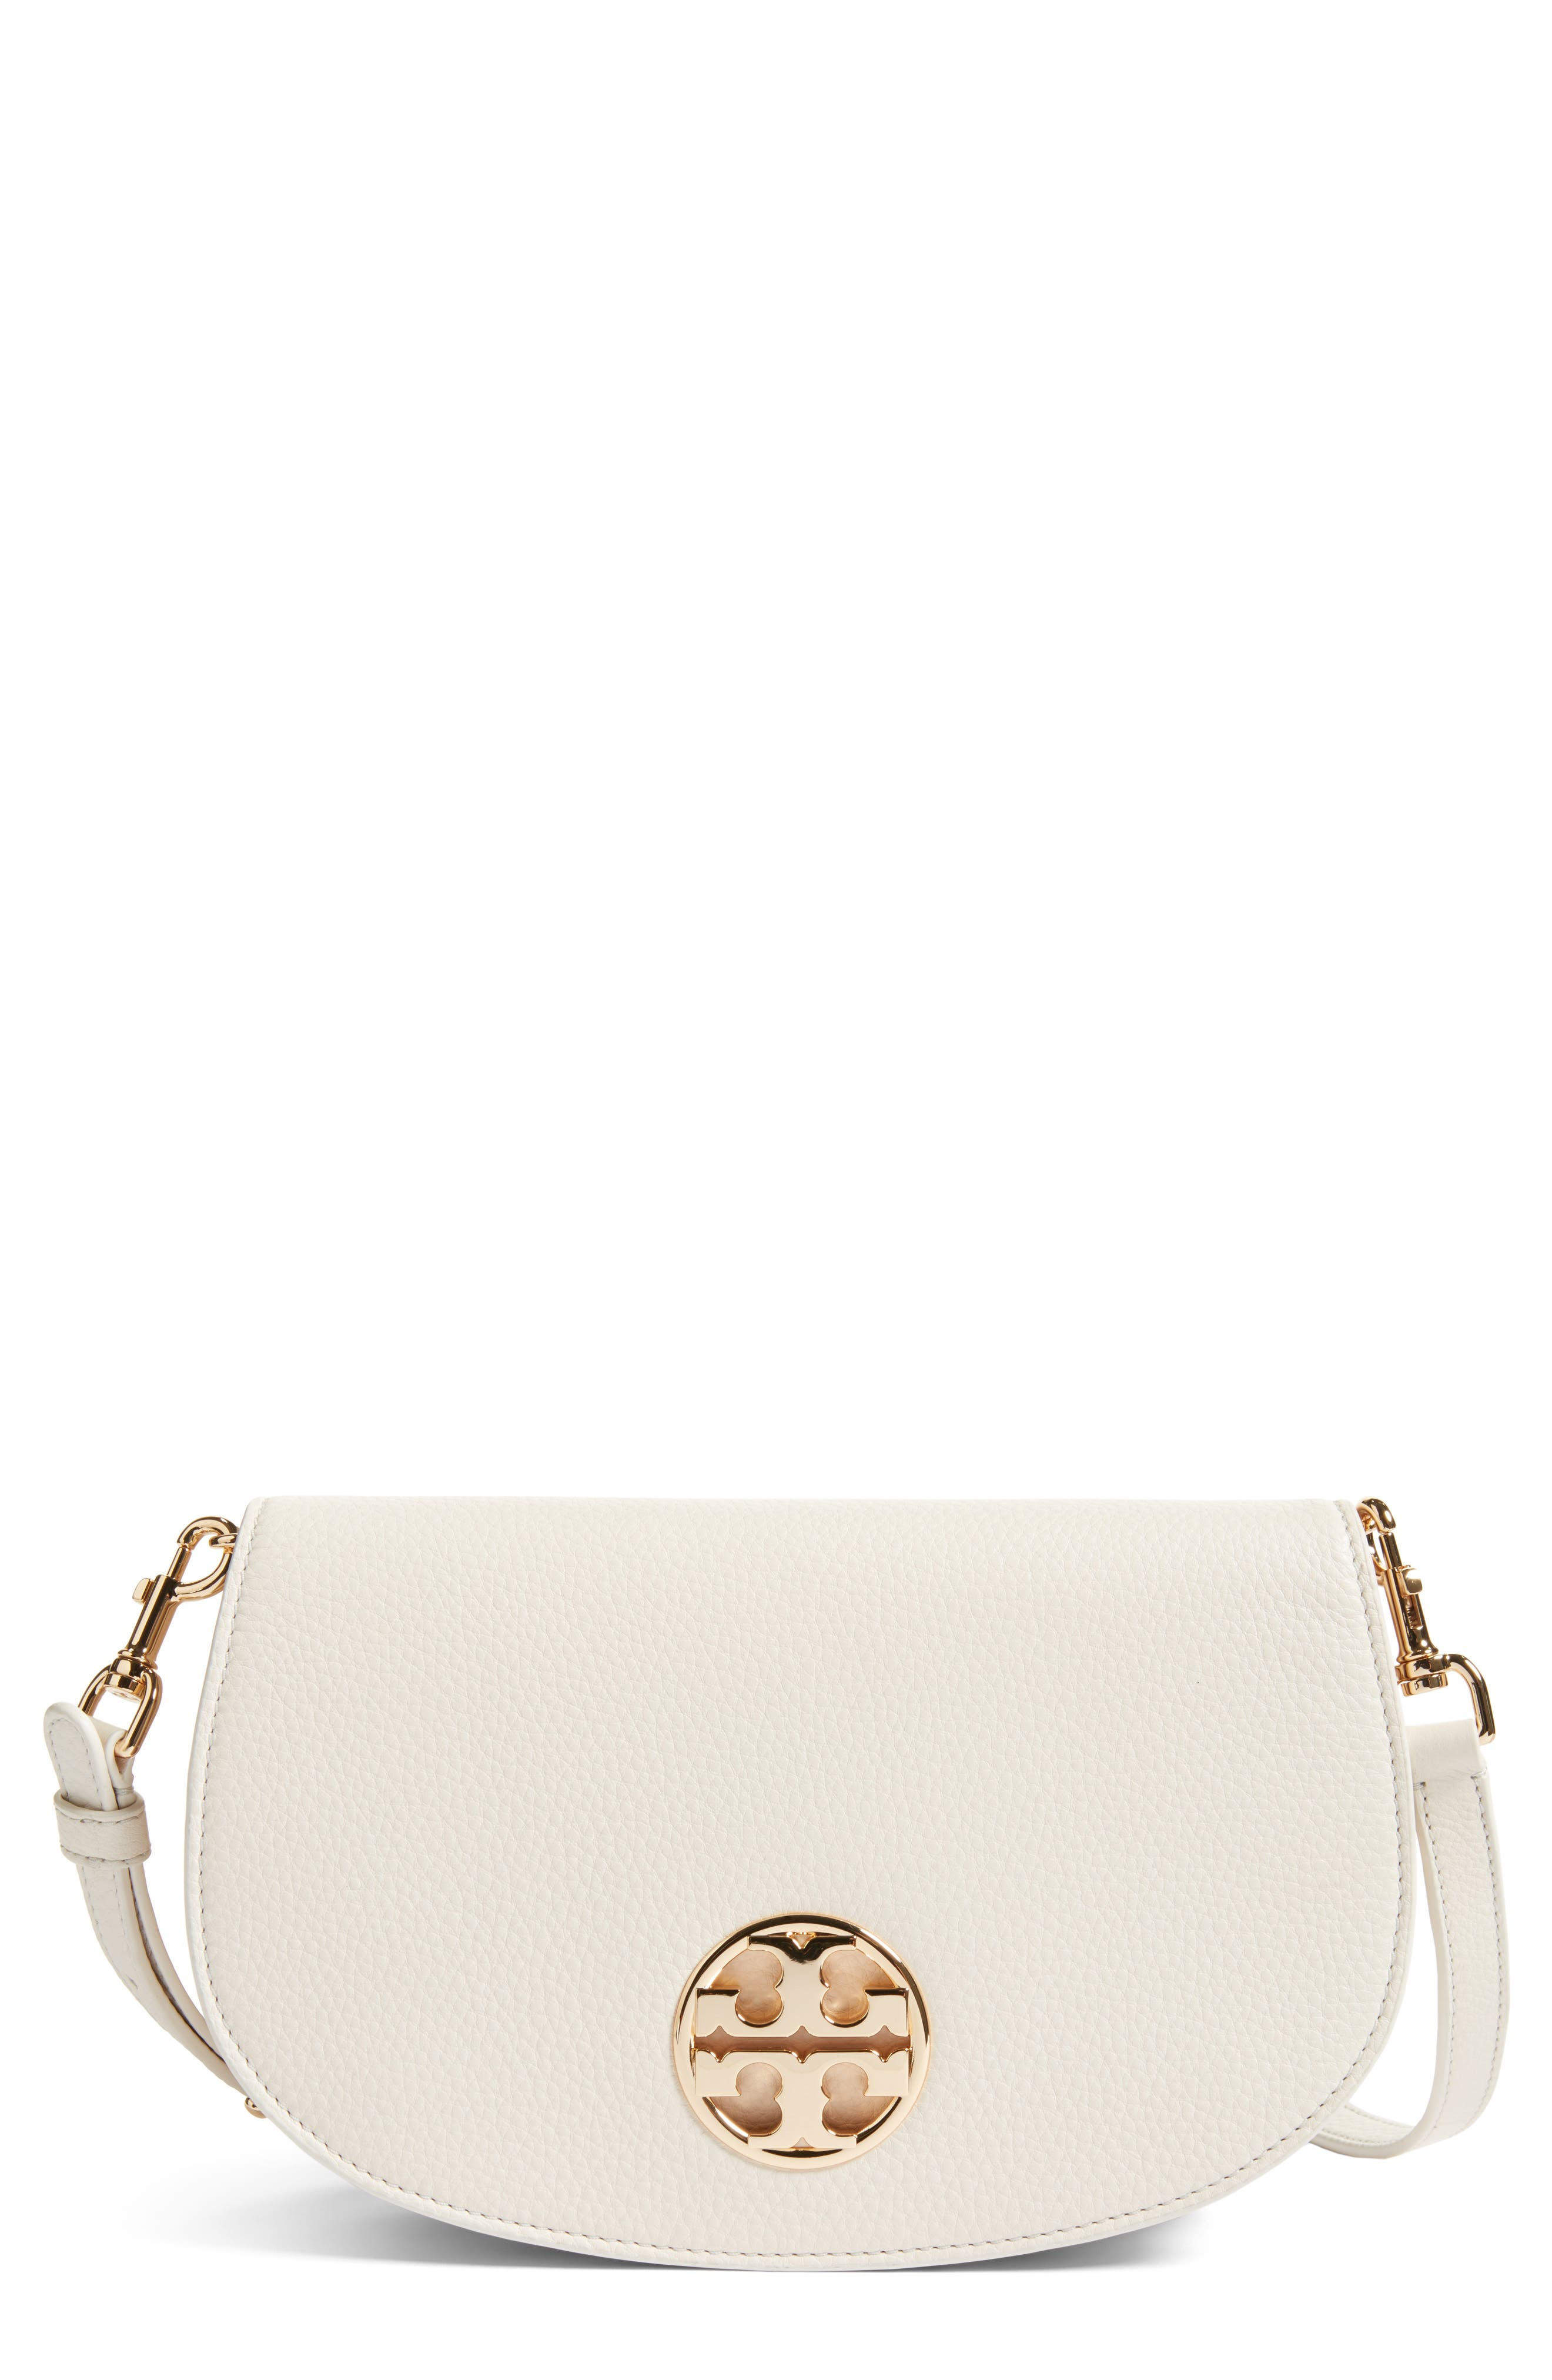 Jamie Convertible Leather Clutch,                         Main,                         color, 104